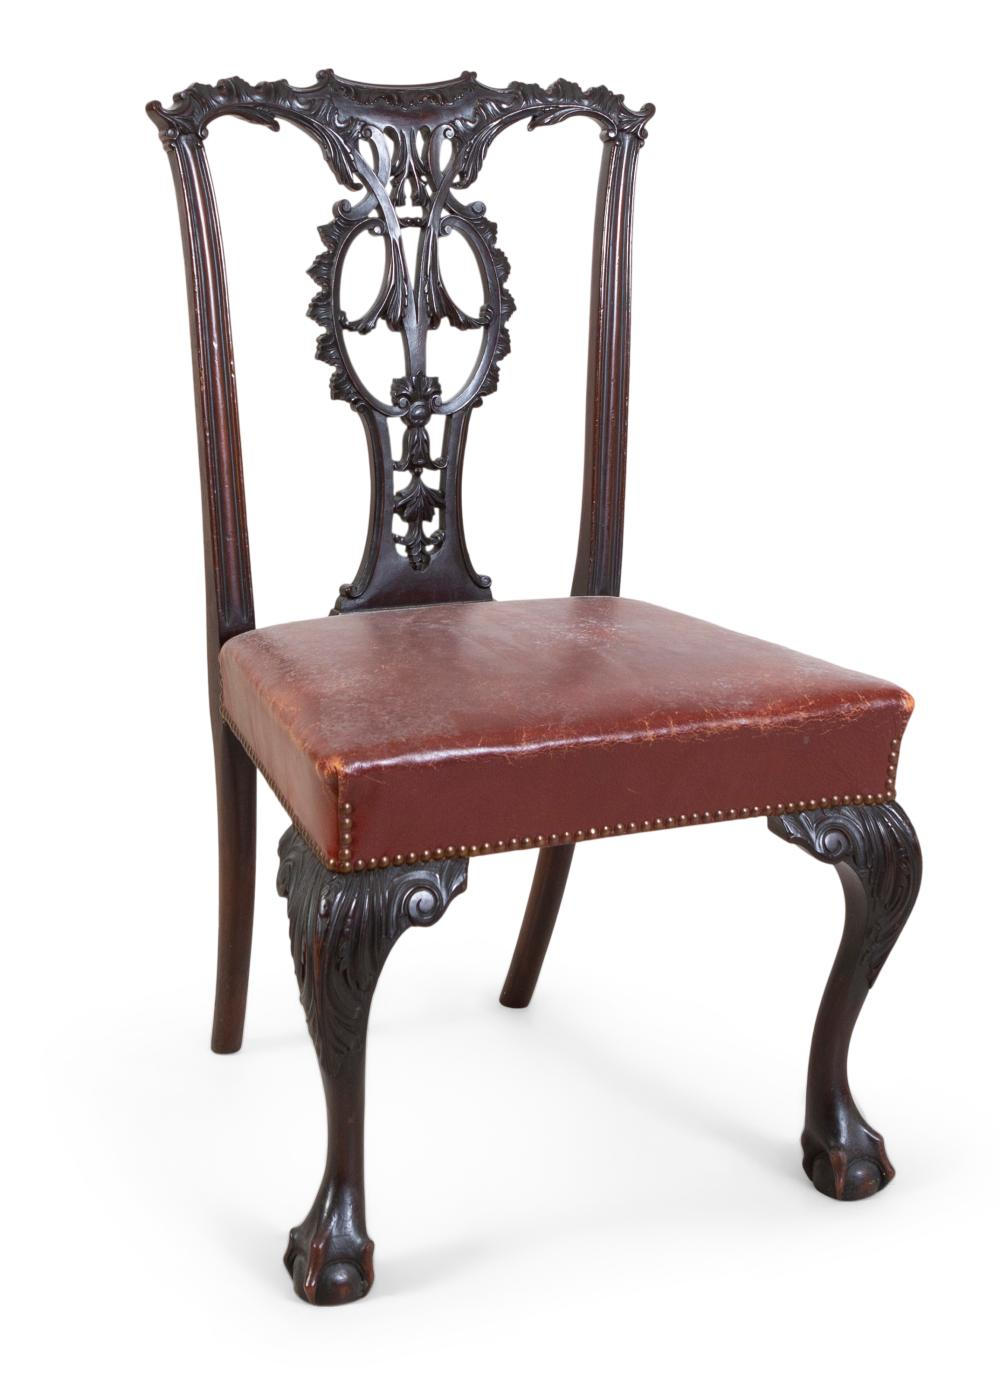 Strange A Georgian Revival Dining Chair Possibly By Butler Of Caraccident5 Cool Chair Designs And Ideas Caraccident5Info